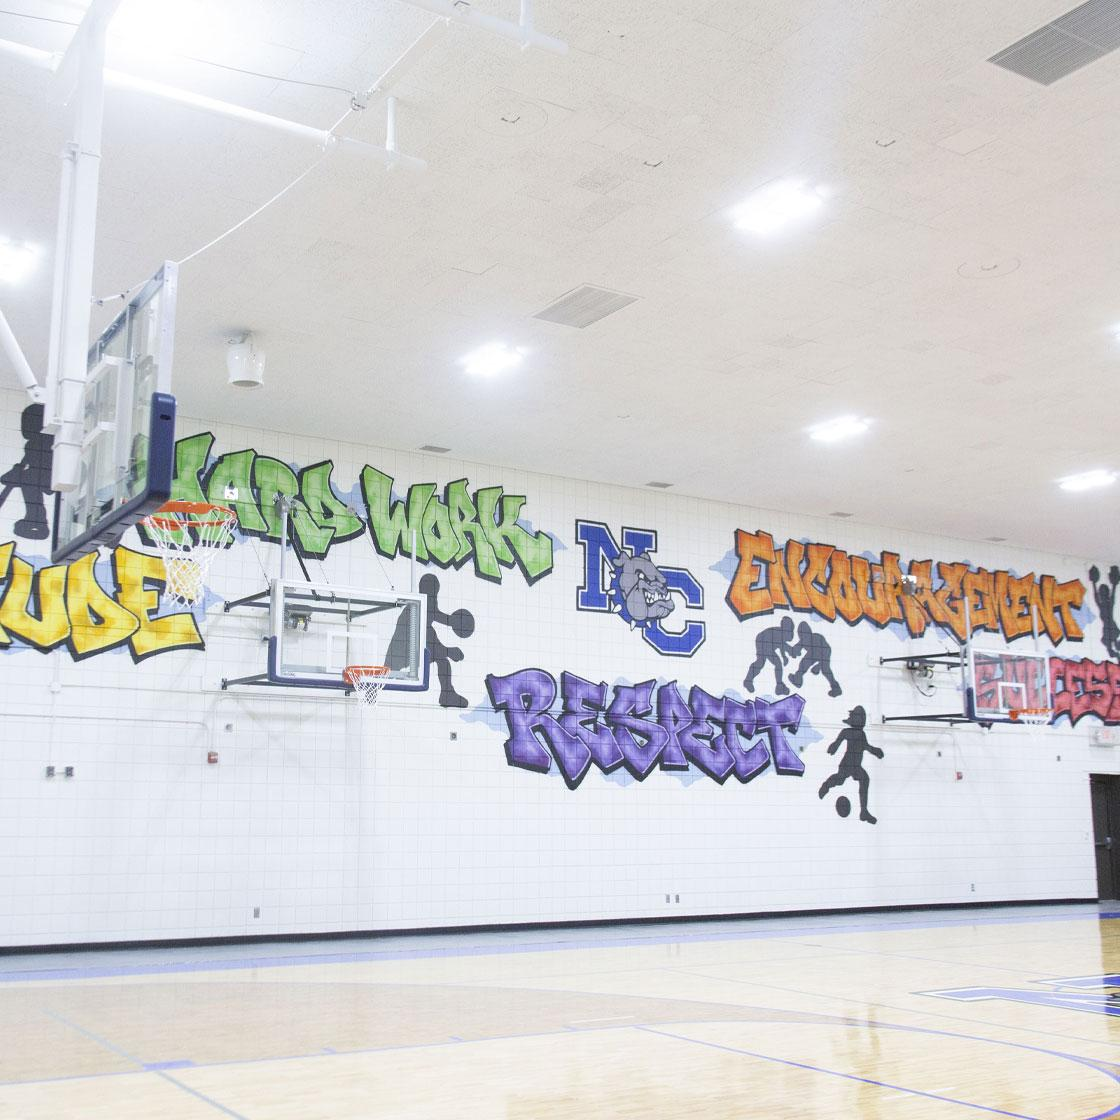 A gymnasium basketball court with a painted wall mural with the words Attitude, Hard Work, Respect, Encouragement, Success